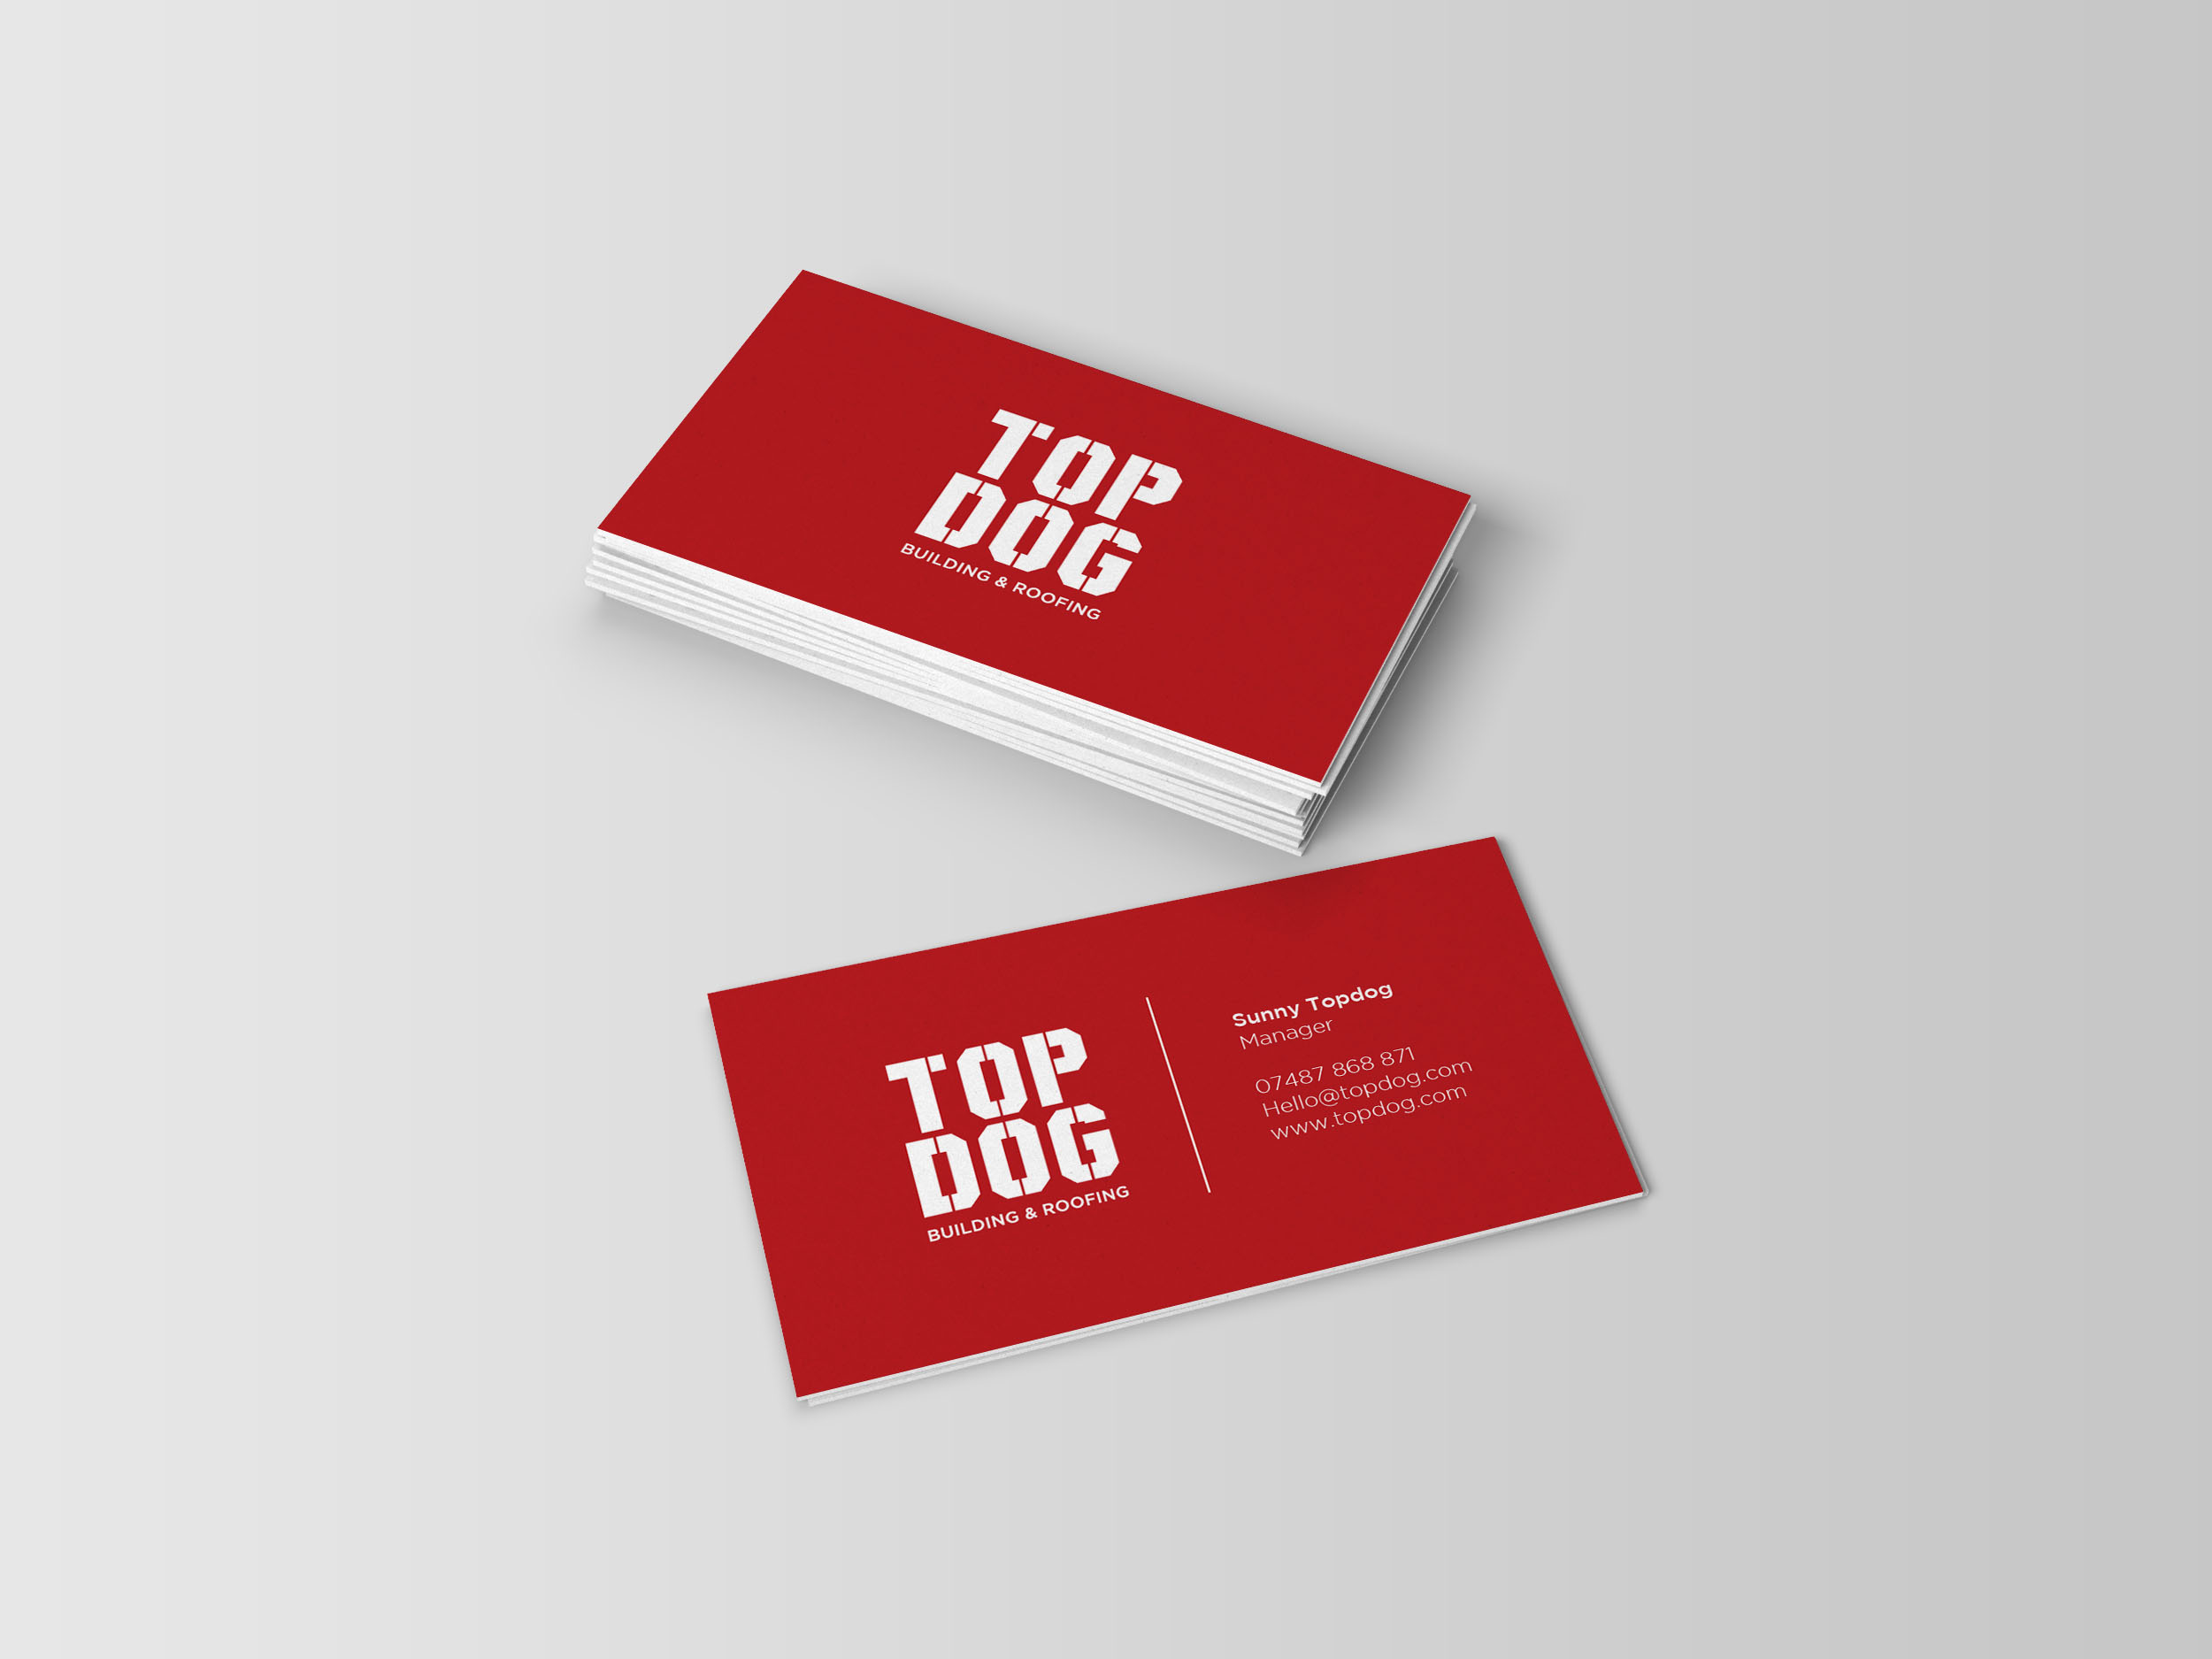 Top Dog Branding Design For Building And Roofing Service